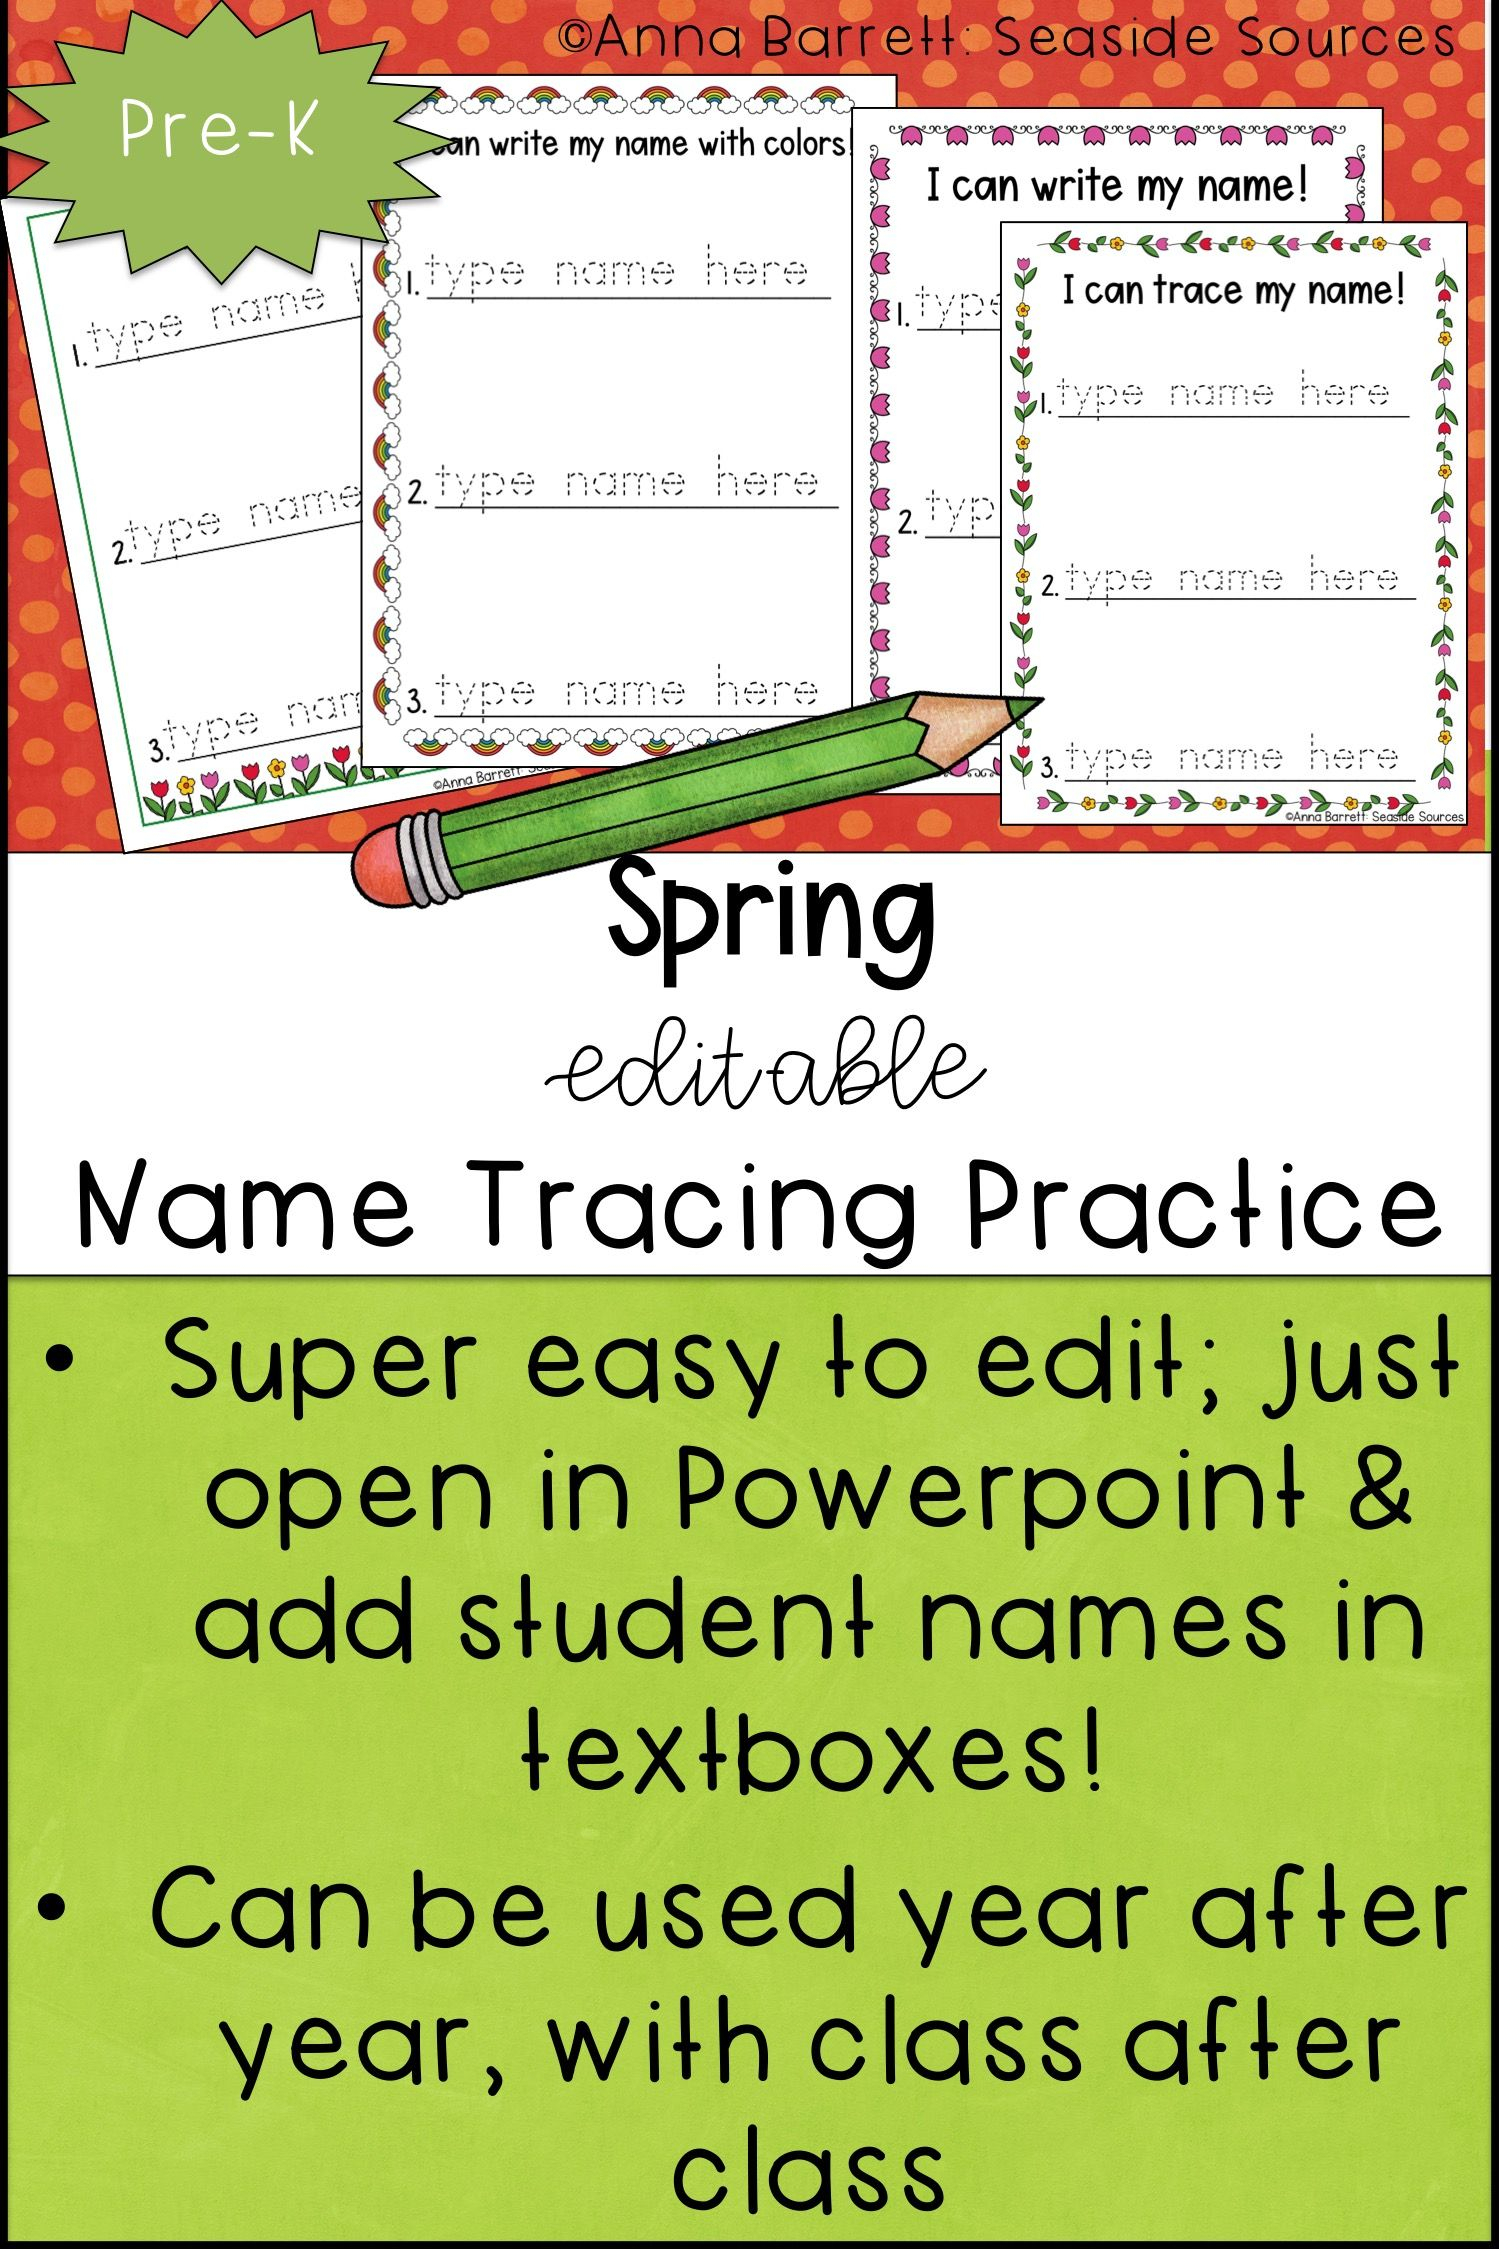 Spring Editable Name Tracing Practice | Name Tracing, Name regarding Name Tracing Practice Editable